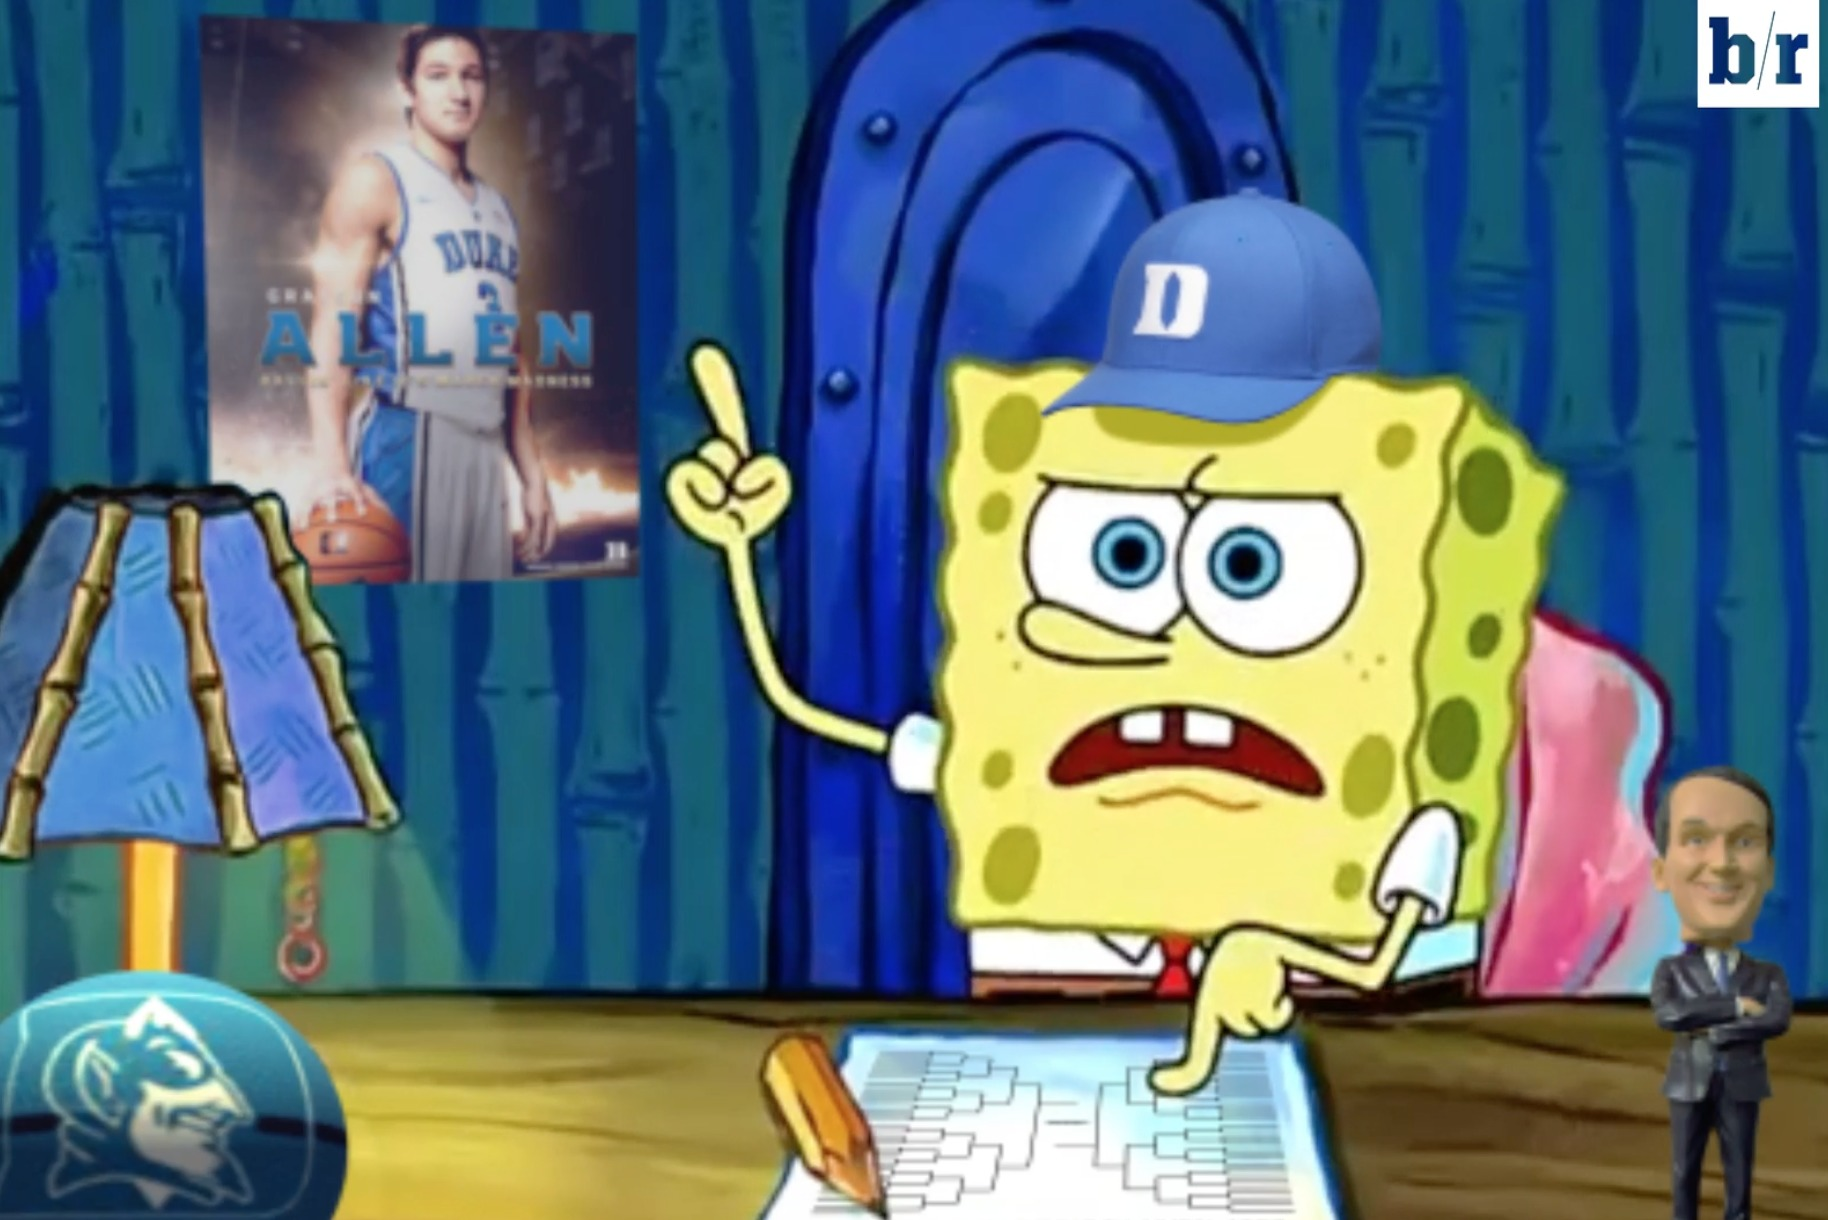 011 Essay Example Duke Fan Spongebob Squarepants Fills Out Ncaa Bracket In Parody Of Writing Gif Crop Exact Screen Shot 2017 For Hours Font Meme Rap Remarkable Full